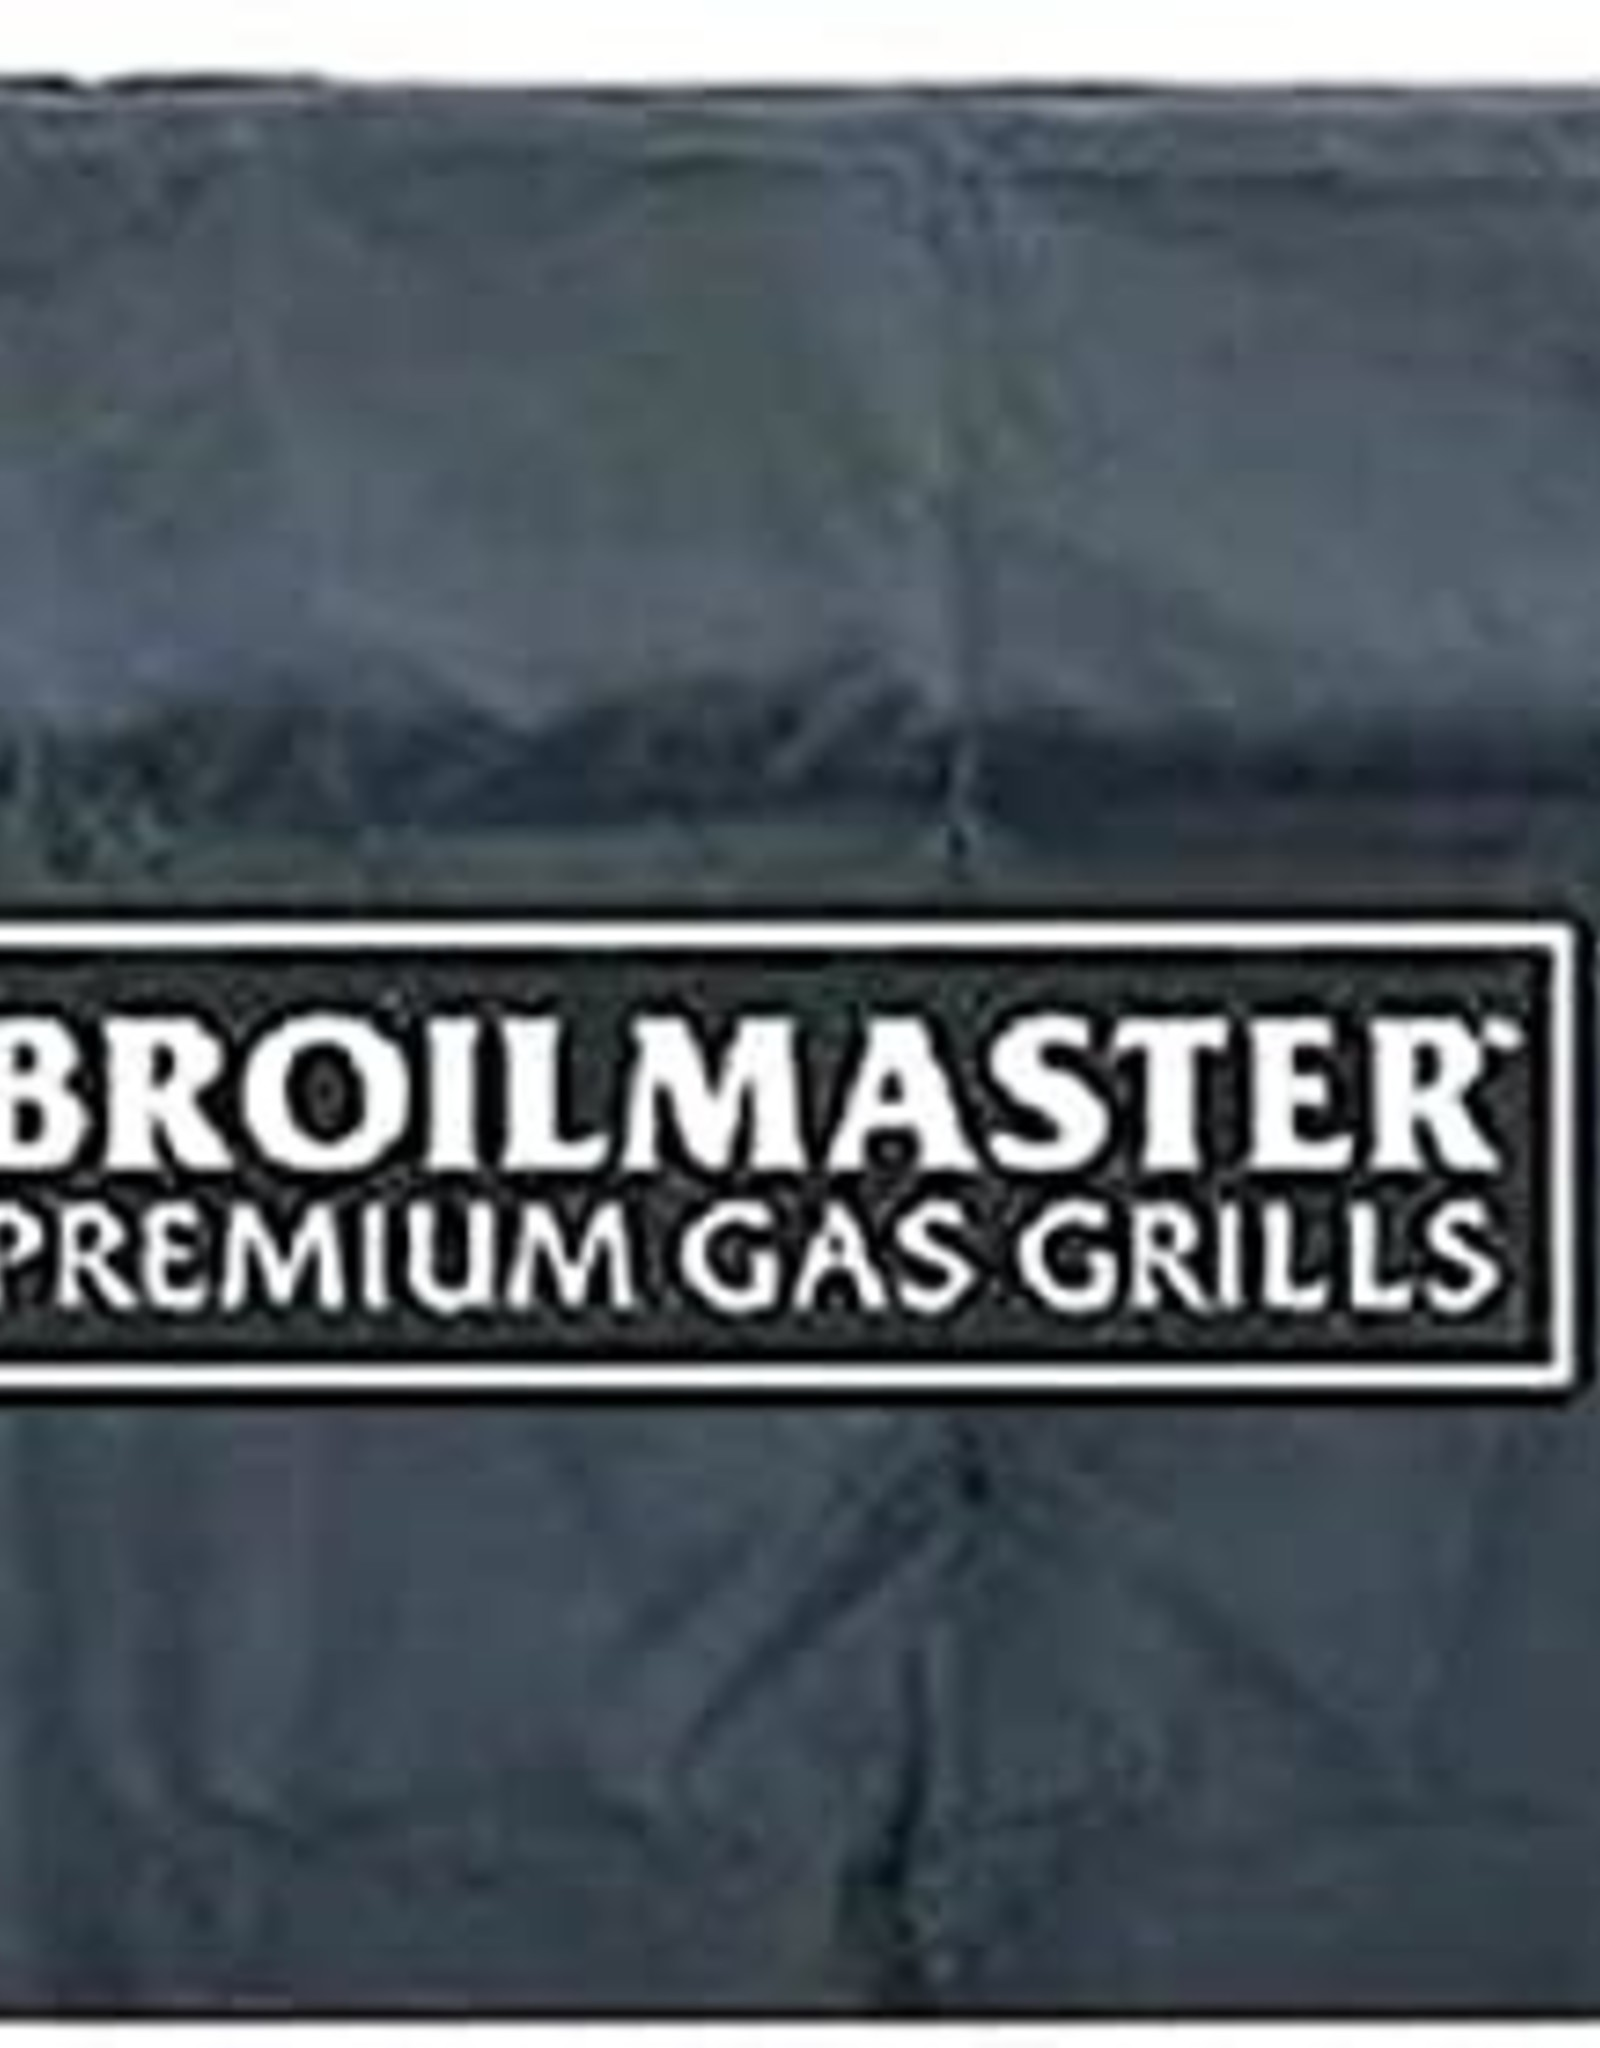 Broilmaster Broilmaster Grill Cover for 42in Built-in Grill - BSACV42S